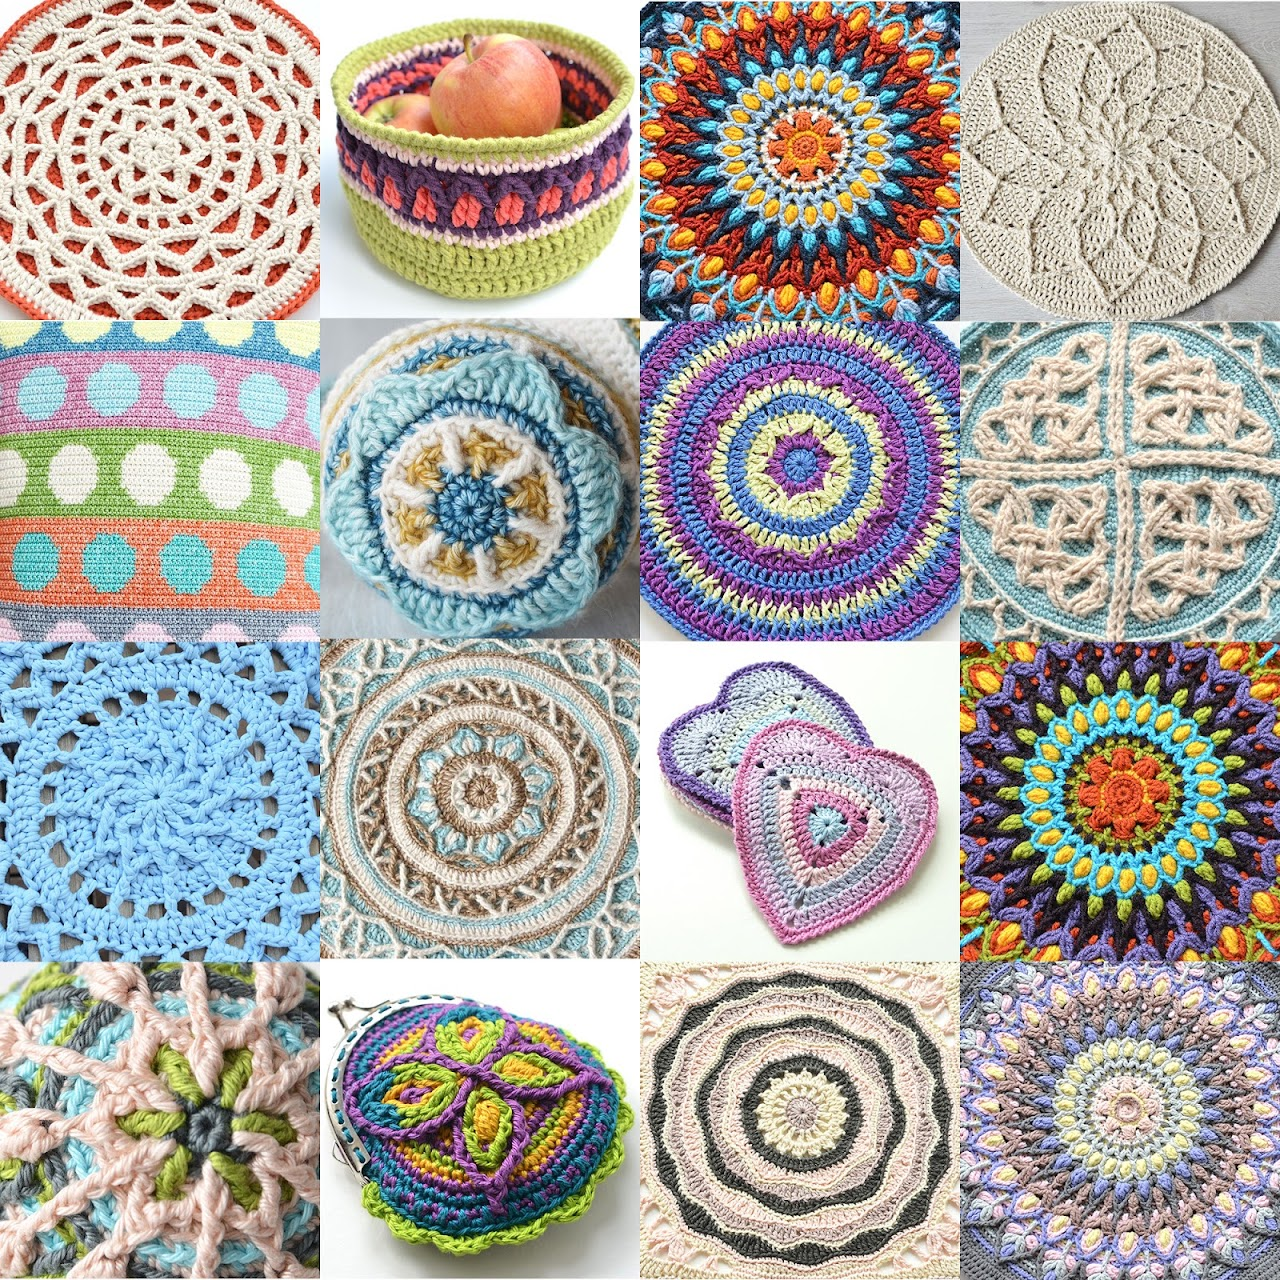 Original crochet designs by Lilla Bjorn. www.lillabjorncrochet.com